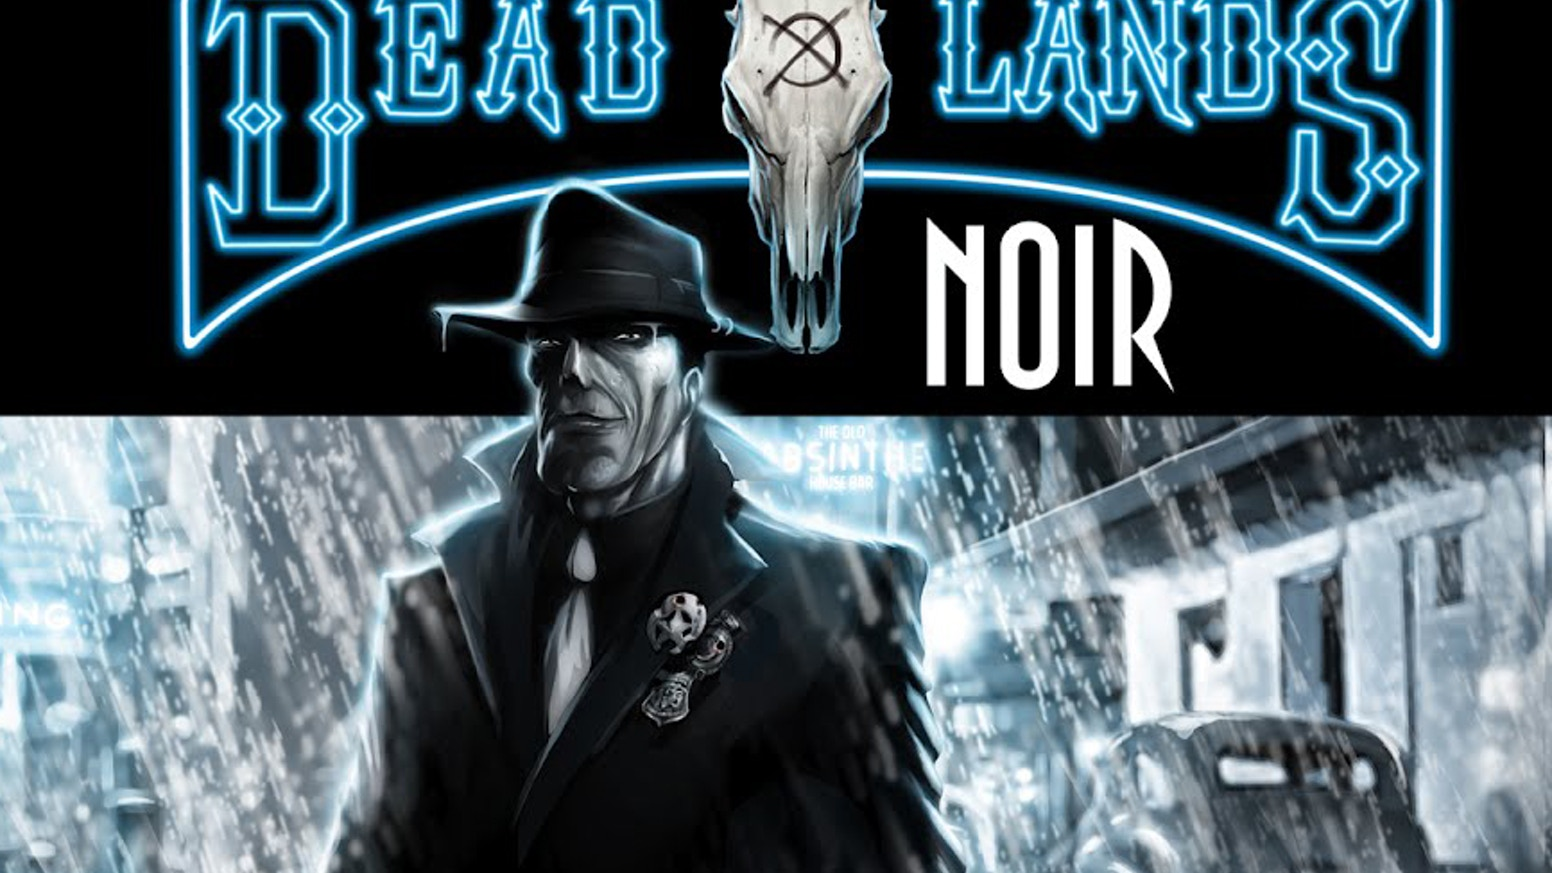 Deadlands noir by shane hensley kickstarter for Bureau 13 savage worlds